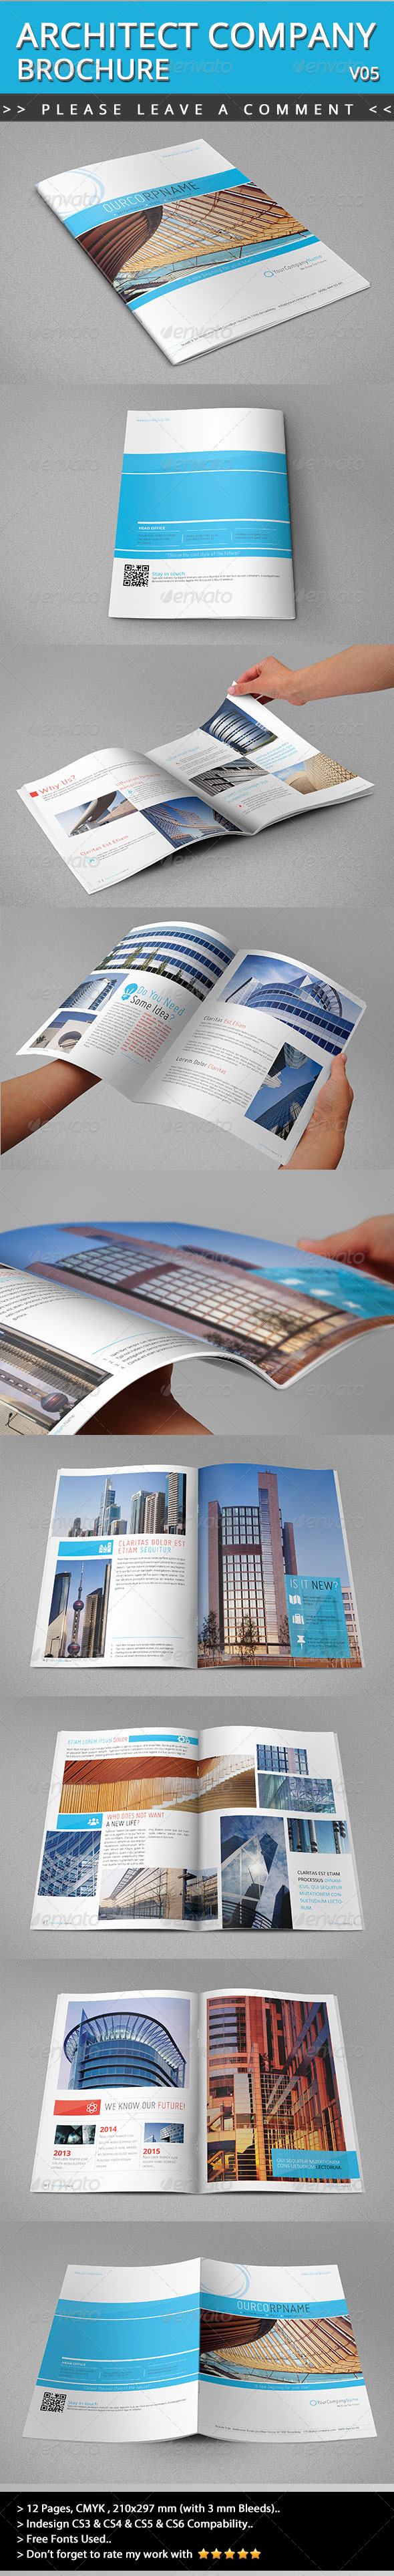 GraphicRiver Architect Brochure V05 4829851